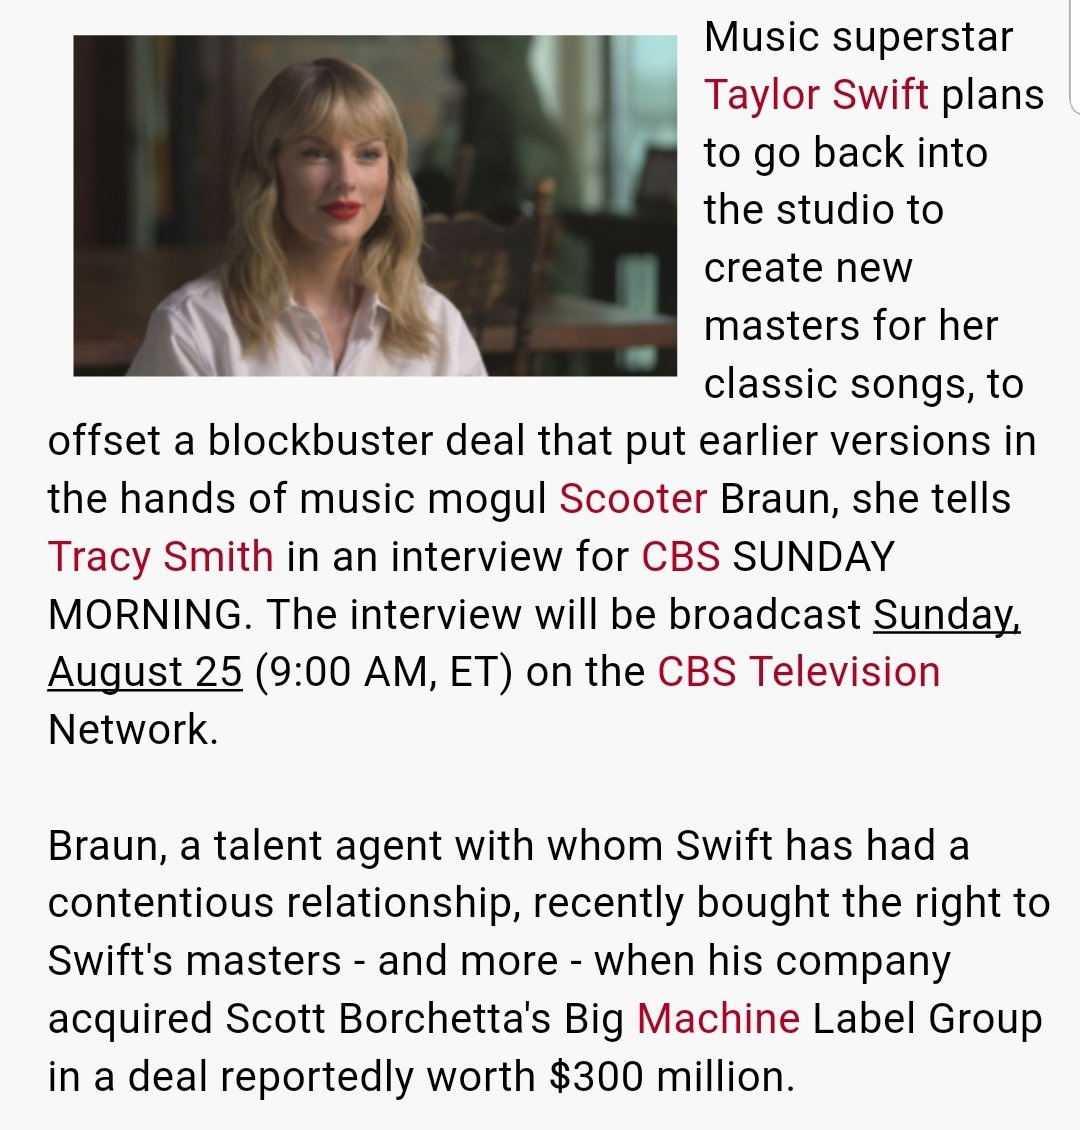 """BREAKING: Taylor Swift plans to re-record new masters for her discography. """"Yeah, absolutely,"""" Swift tells CBS Sunday Morning. This will be a HISTORIC move from Taylor.   @scooterbraun your time is UP!  <br>http://pic.twitter.com/rdWMF6KxkZ"""